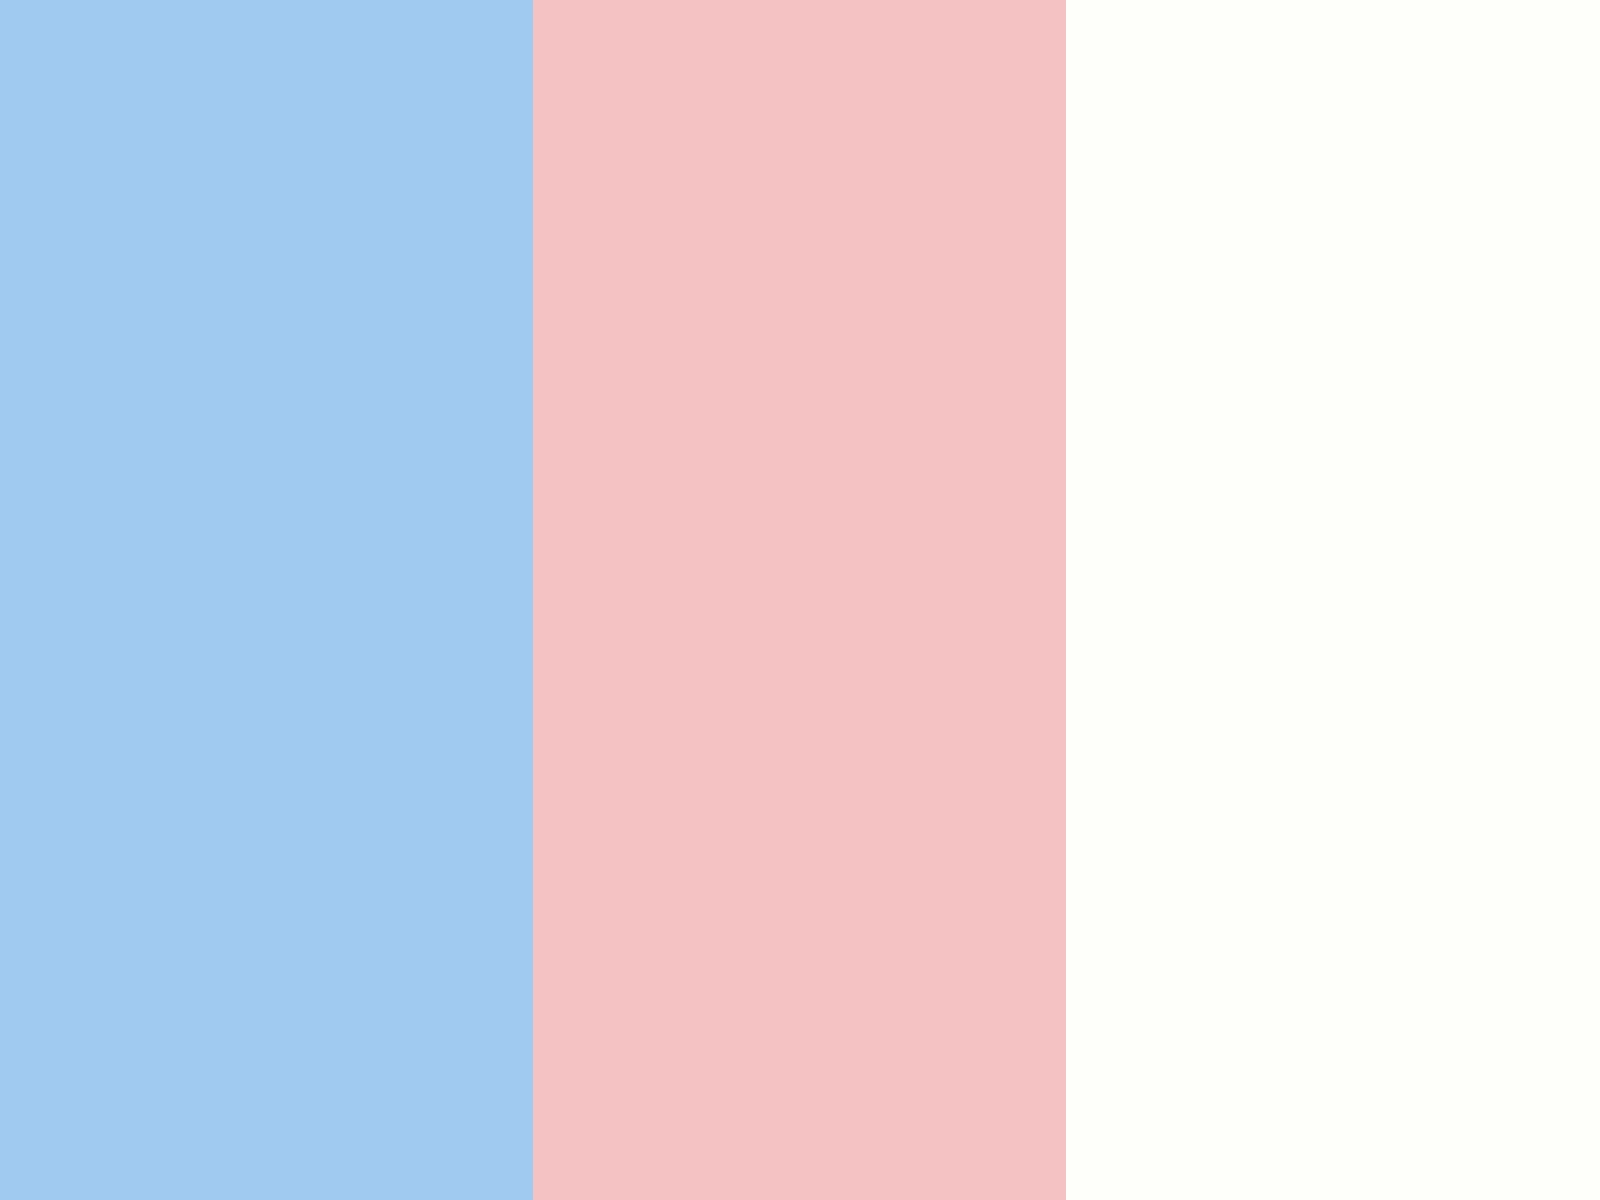 Baby Blue Eyes Baby Pink and Baby Powder Three Color Background 1600x1200